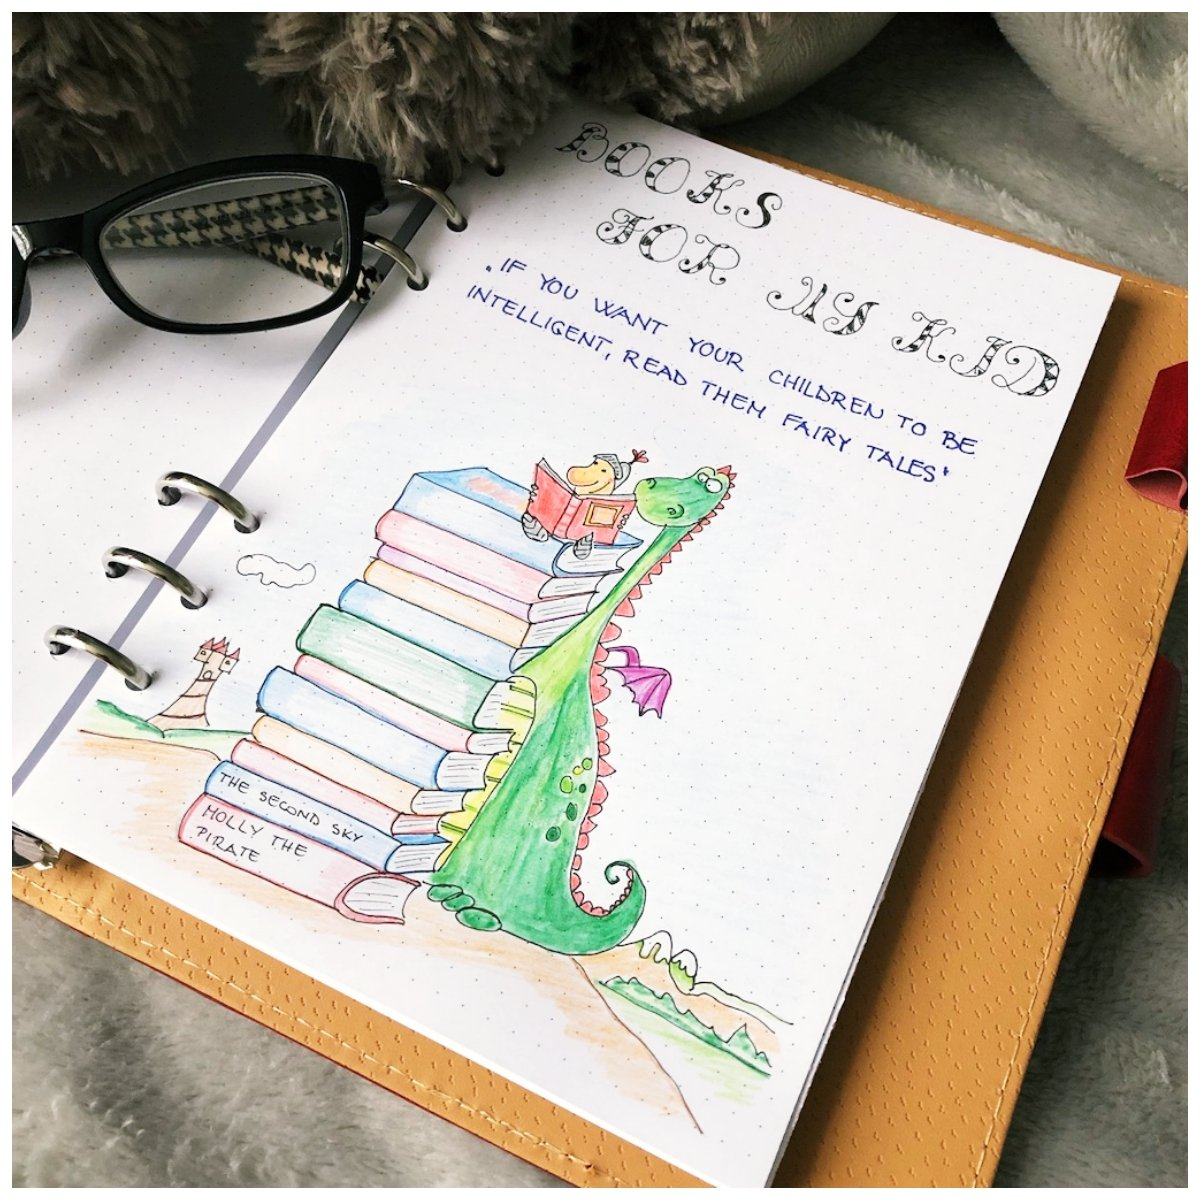 Bullet journal - Books to read for the kids - itstartswithacoffee.com #bulletjournal #booktoread #itstartswithacoffee.com